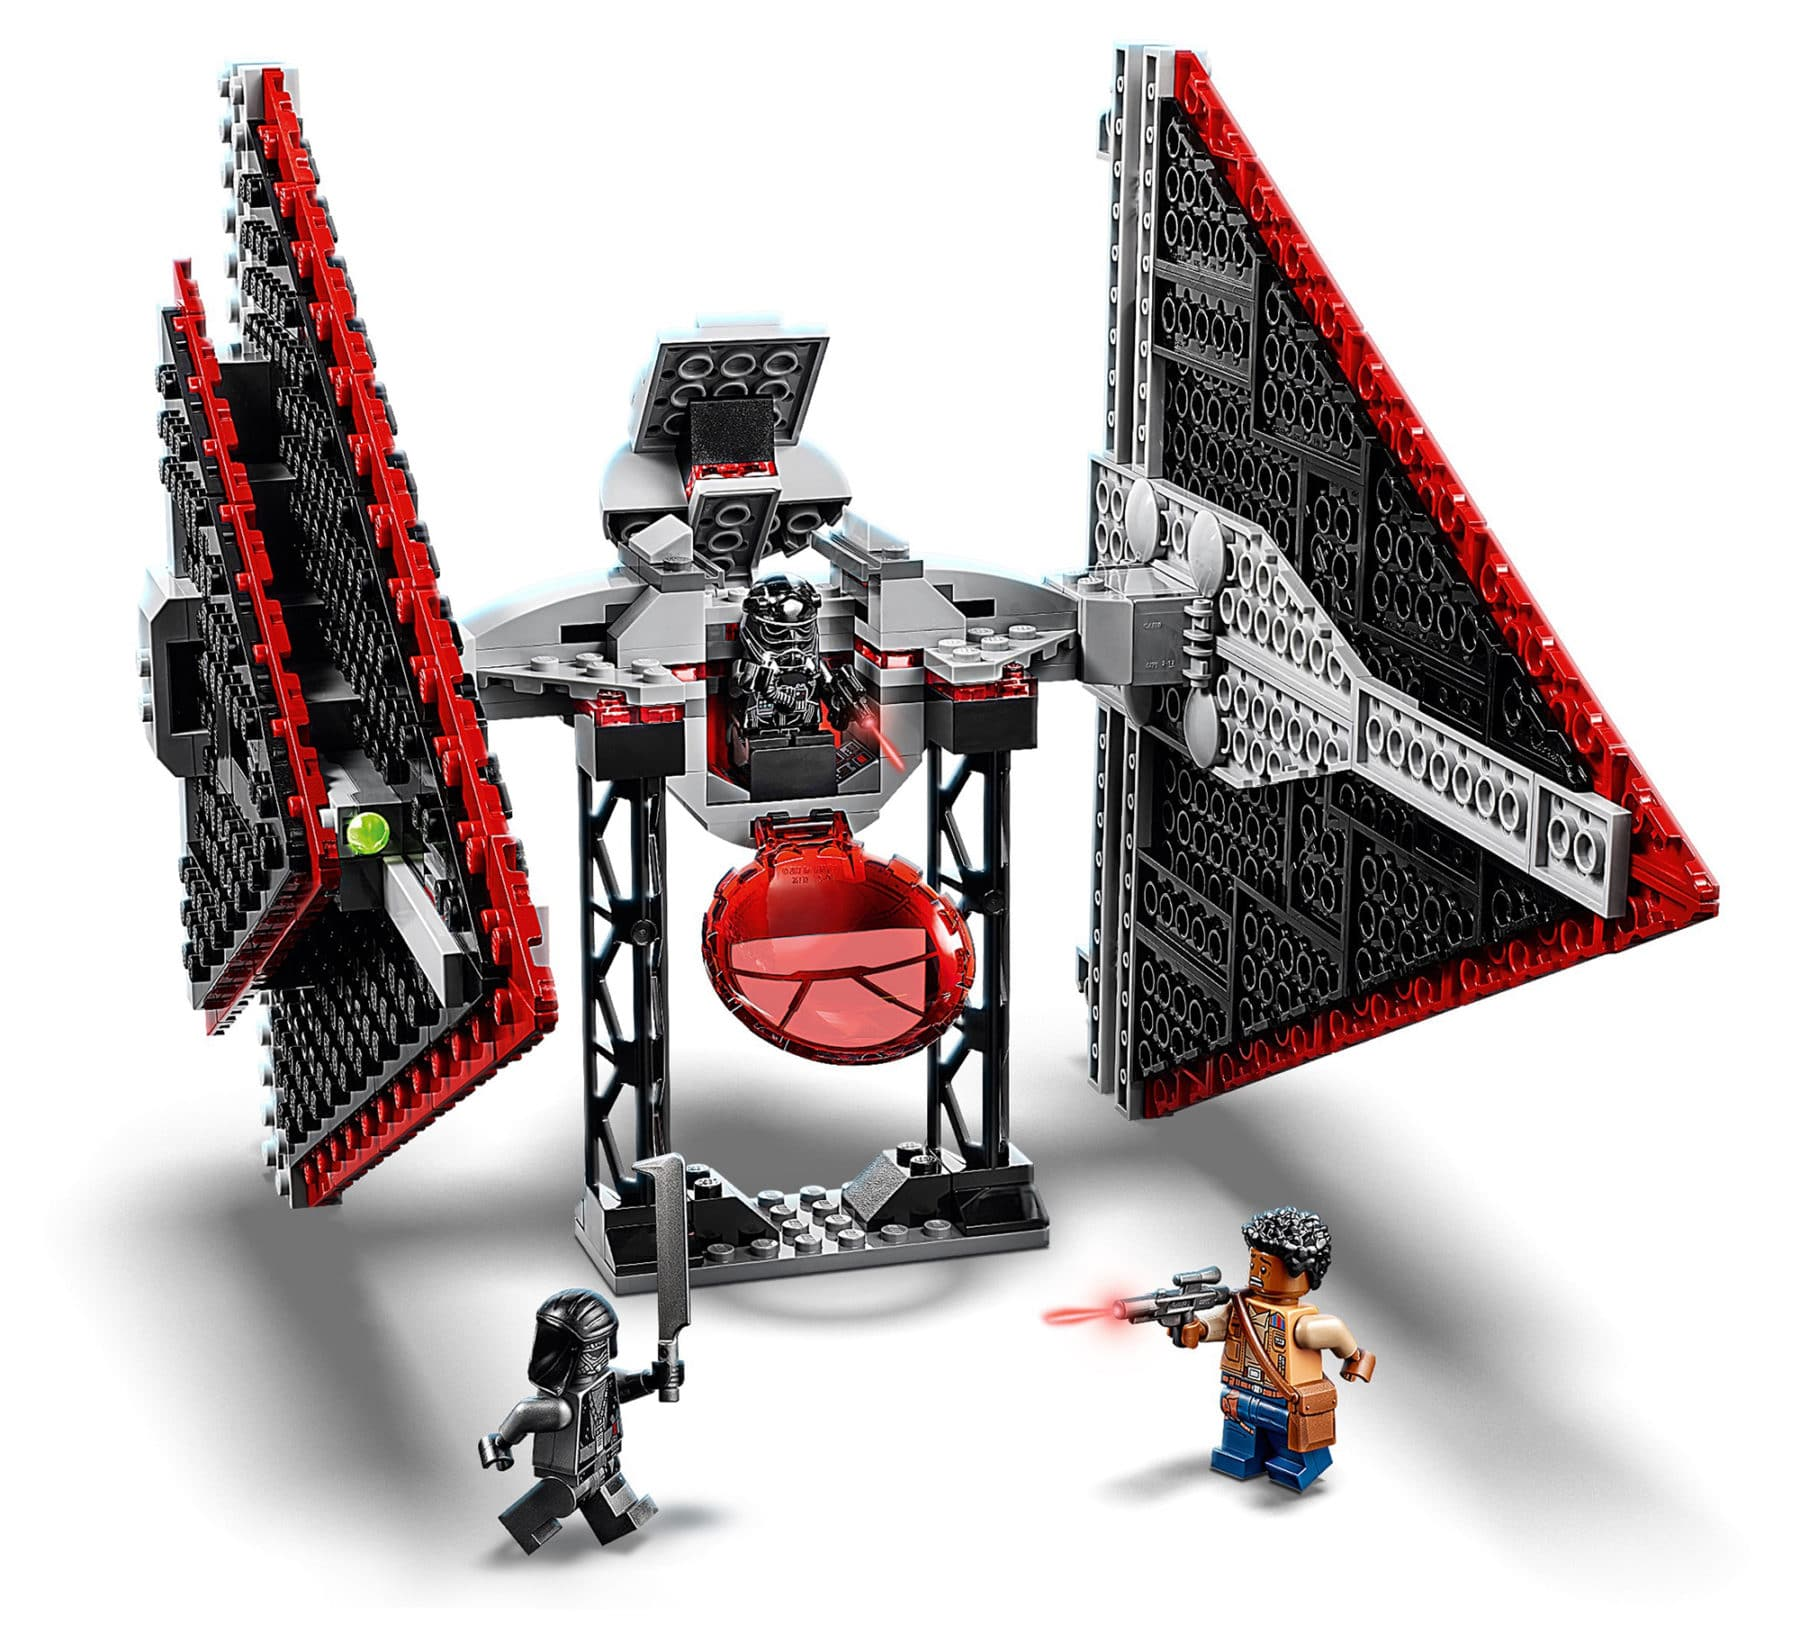 LEGO 75272 Star Wars Sith TIE Fighter images